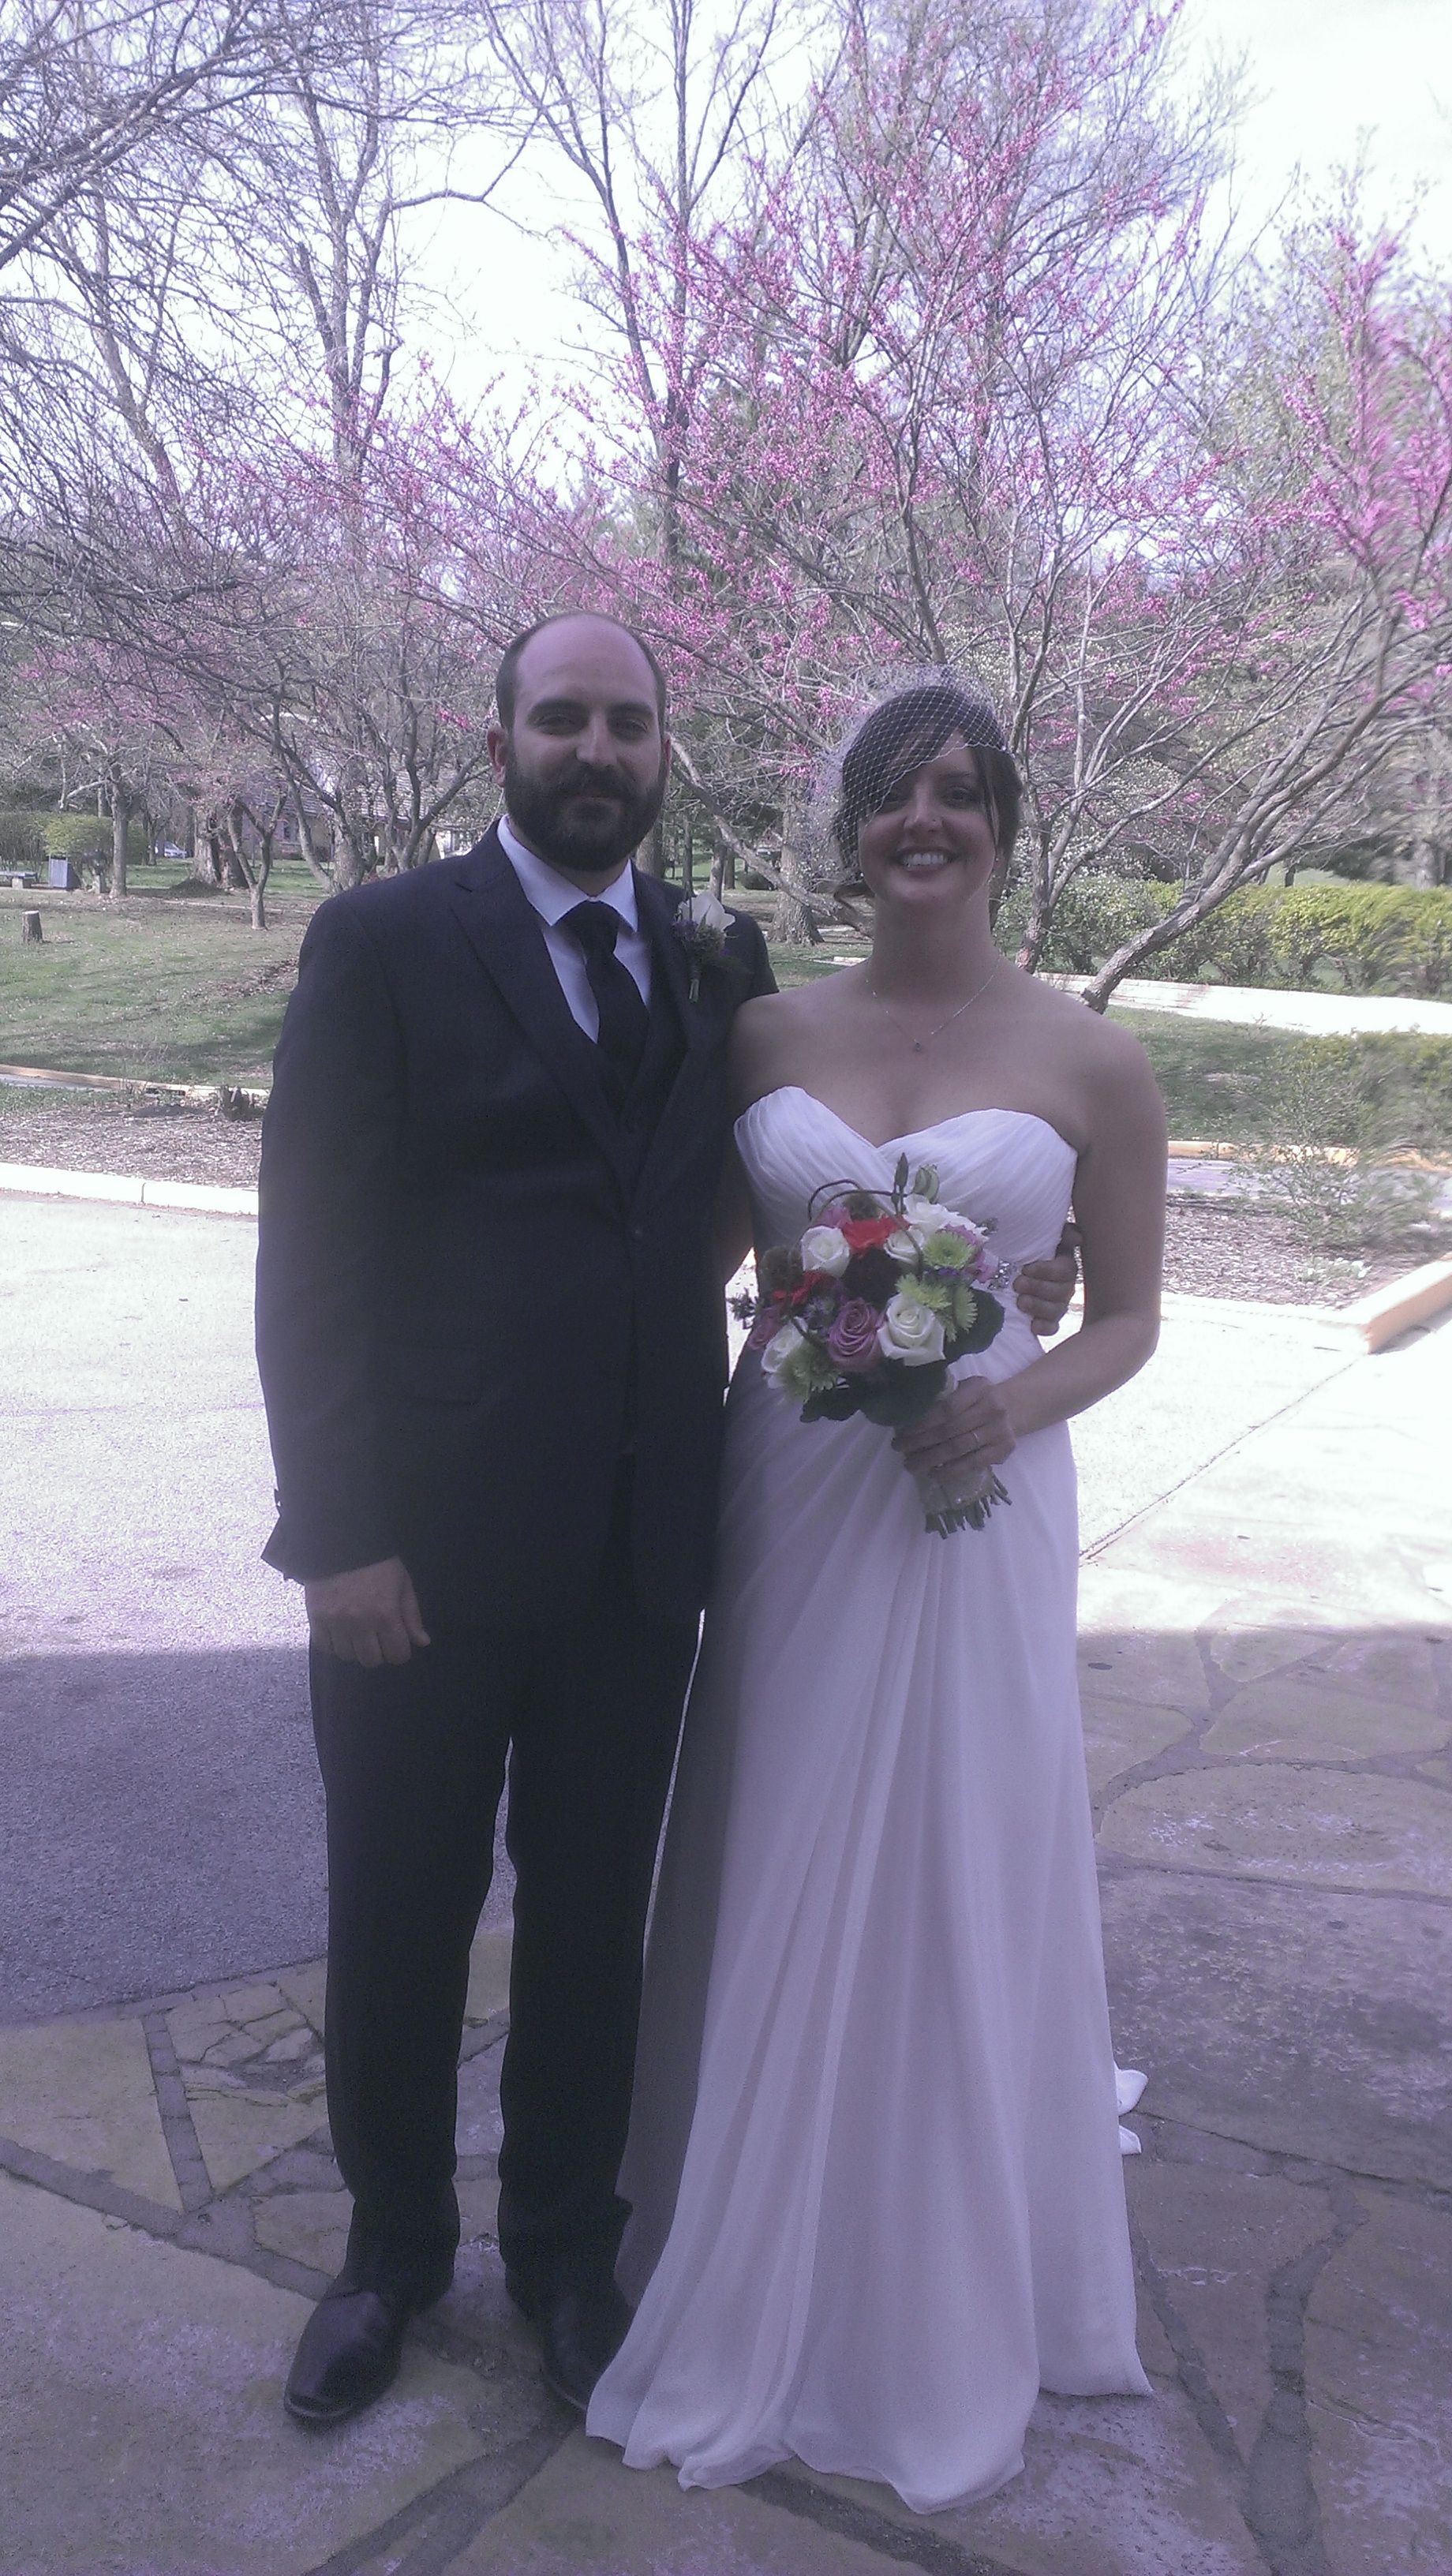 Daniel and Stacey were married at Pere Marquette State Park on 4-19-14